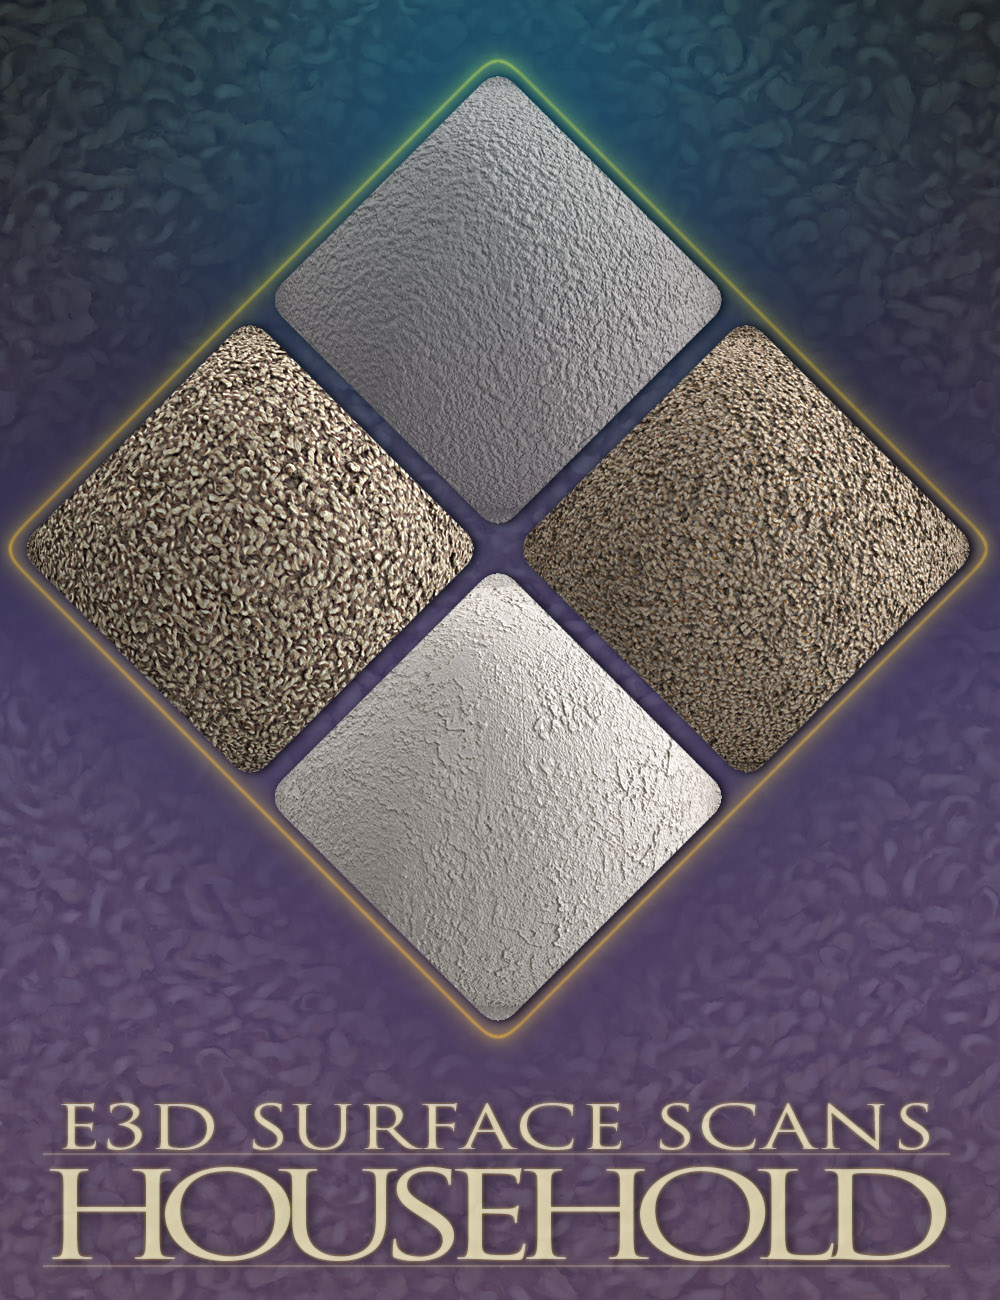 E3D Surface Scans - Household Textures and Merchant Resource by: EcoManiac3D, 3D Models by Daz 3D